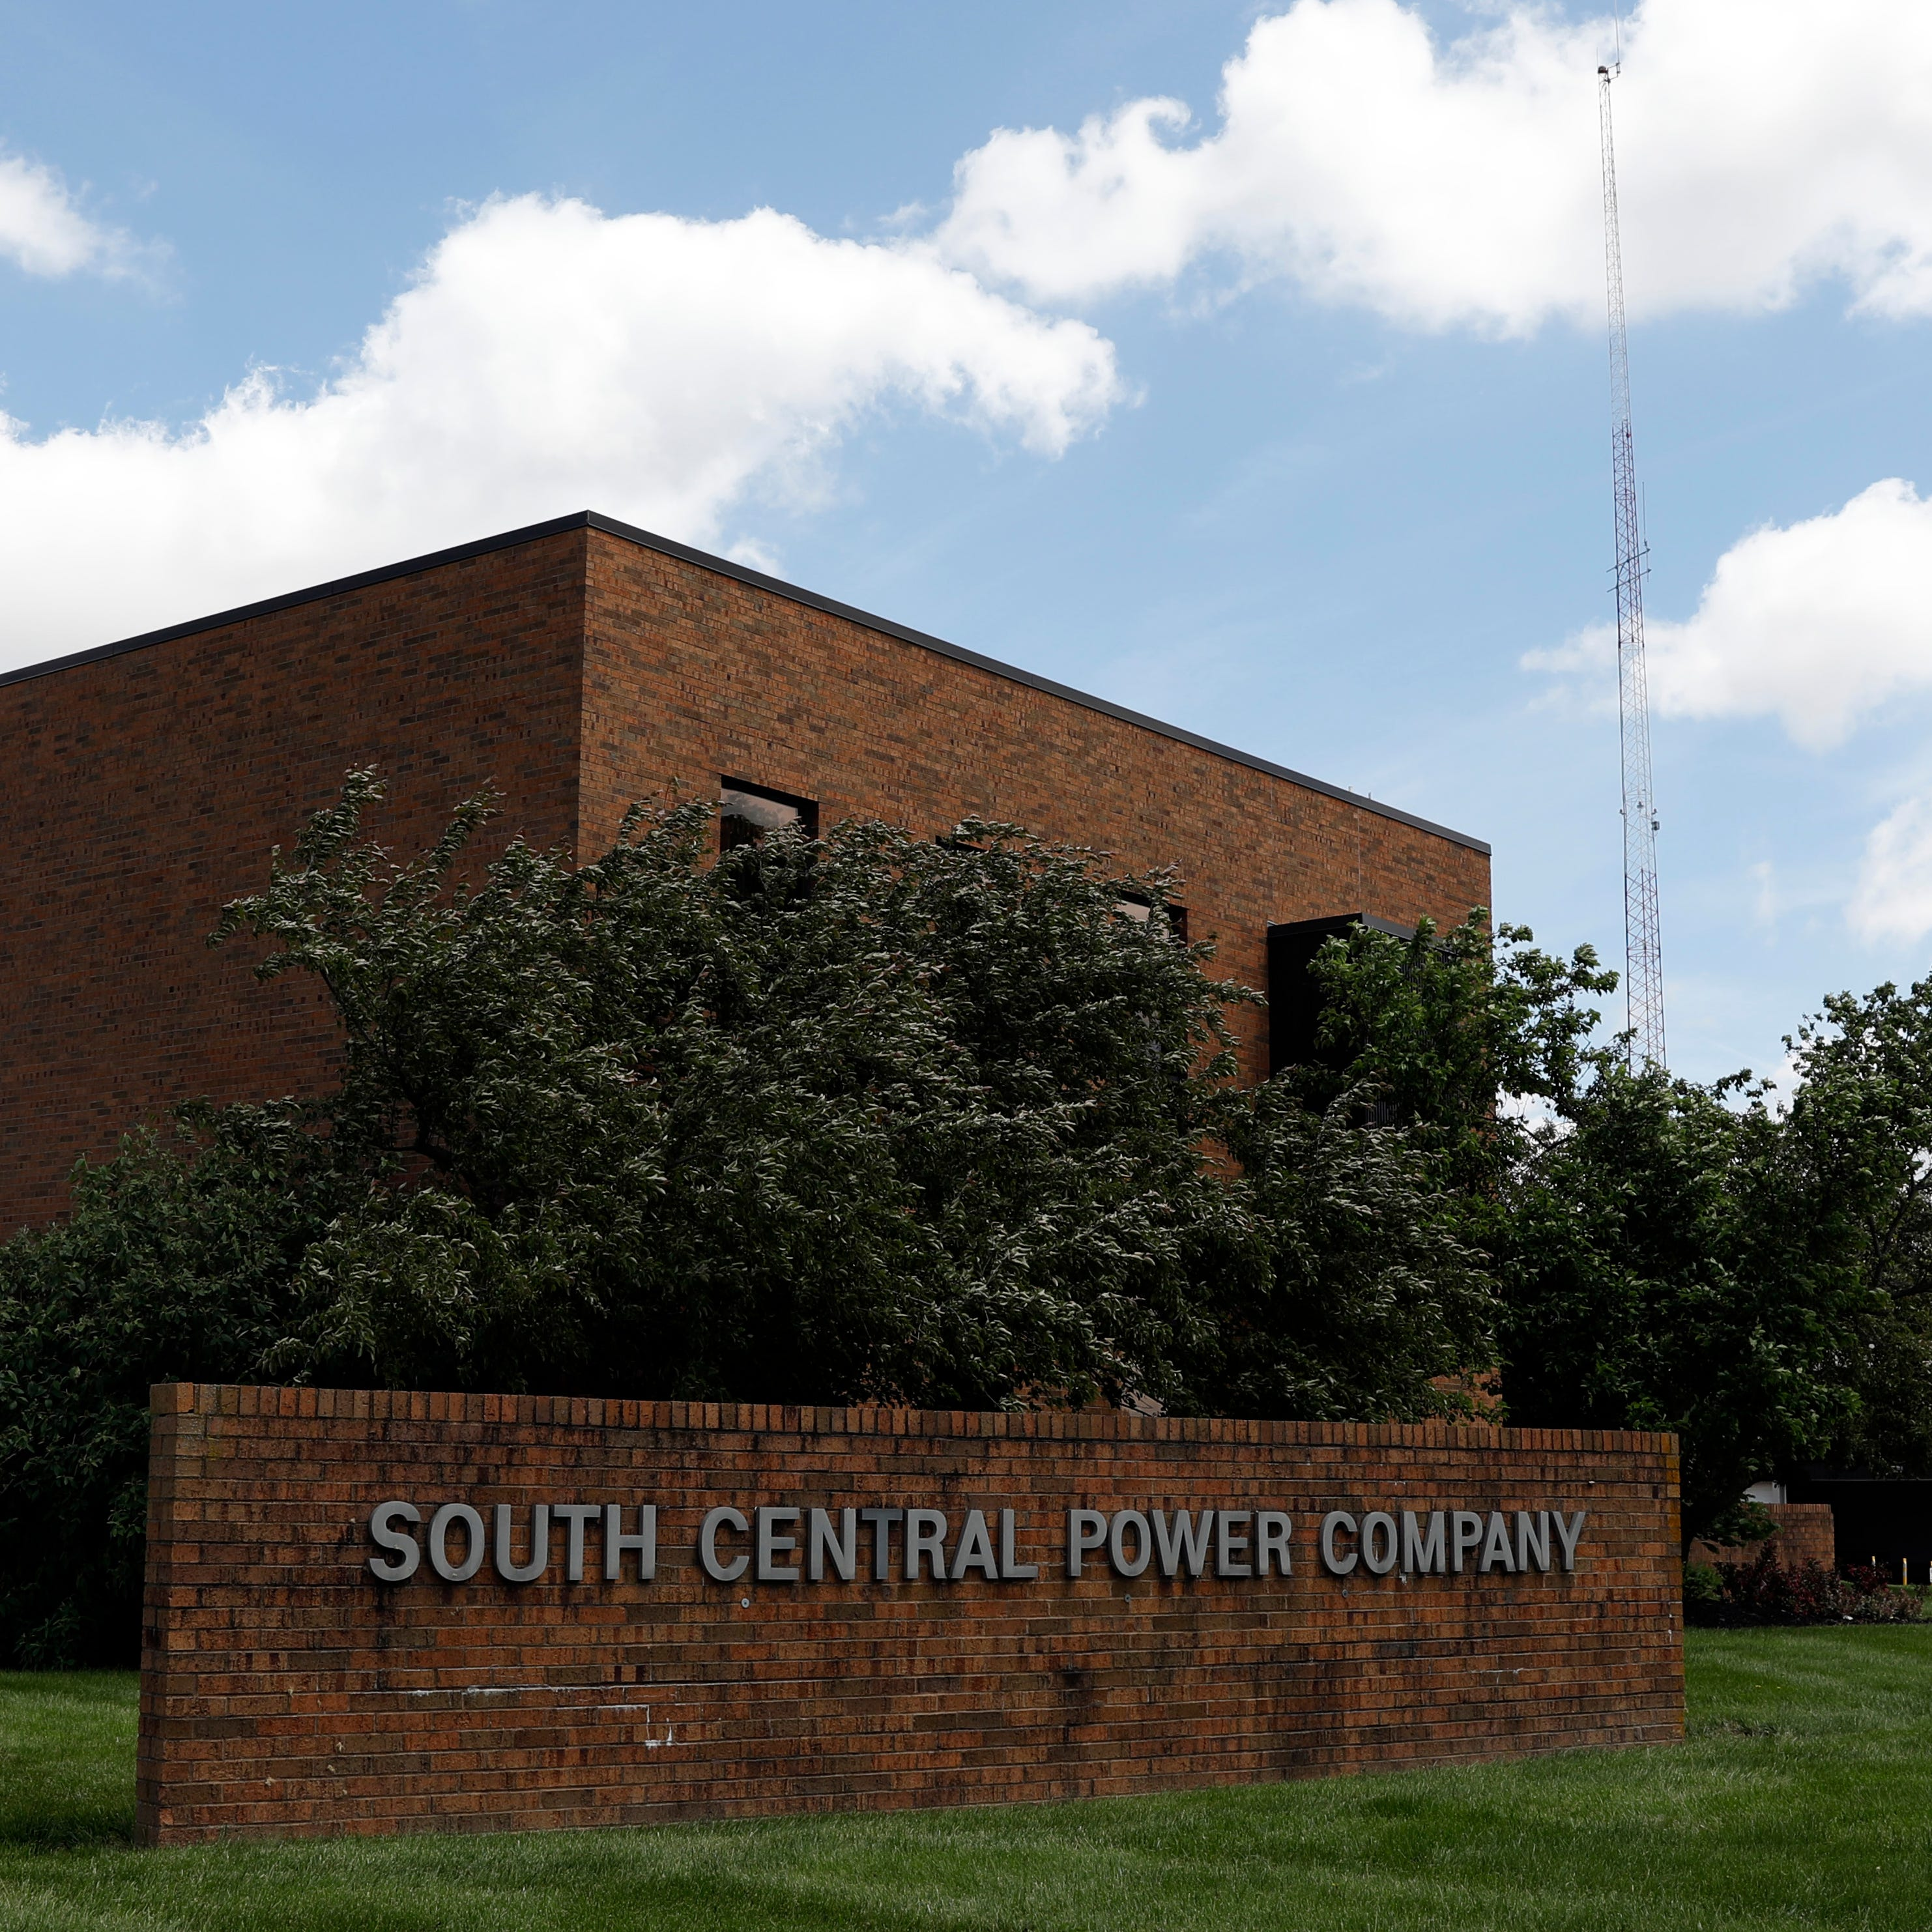 South Central Power to consolidate Coonpath Road, Canal Winchester and Circleville offices